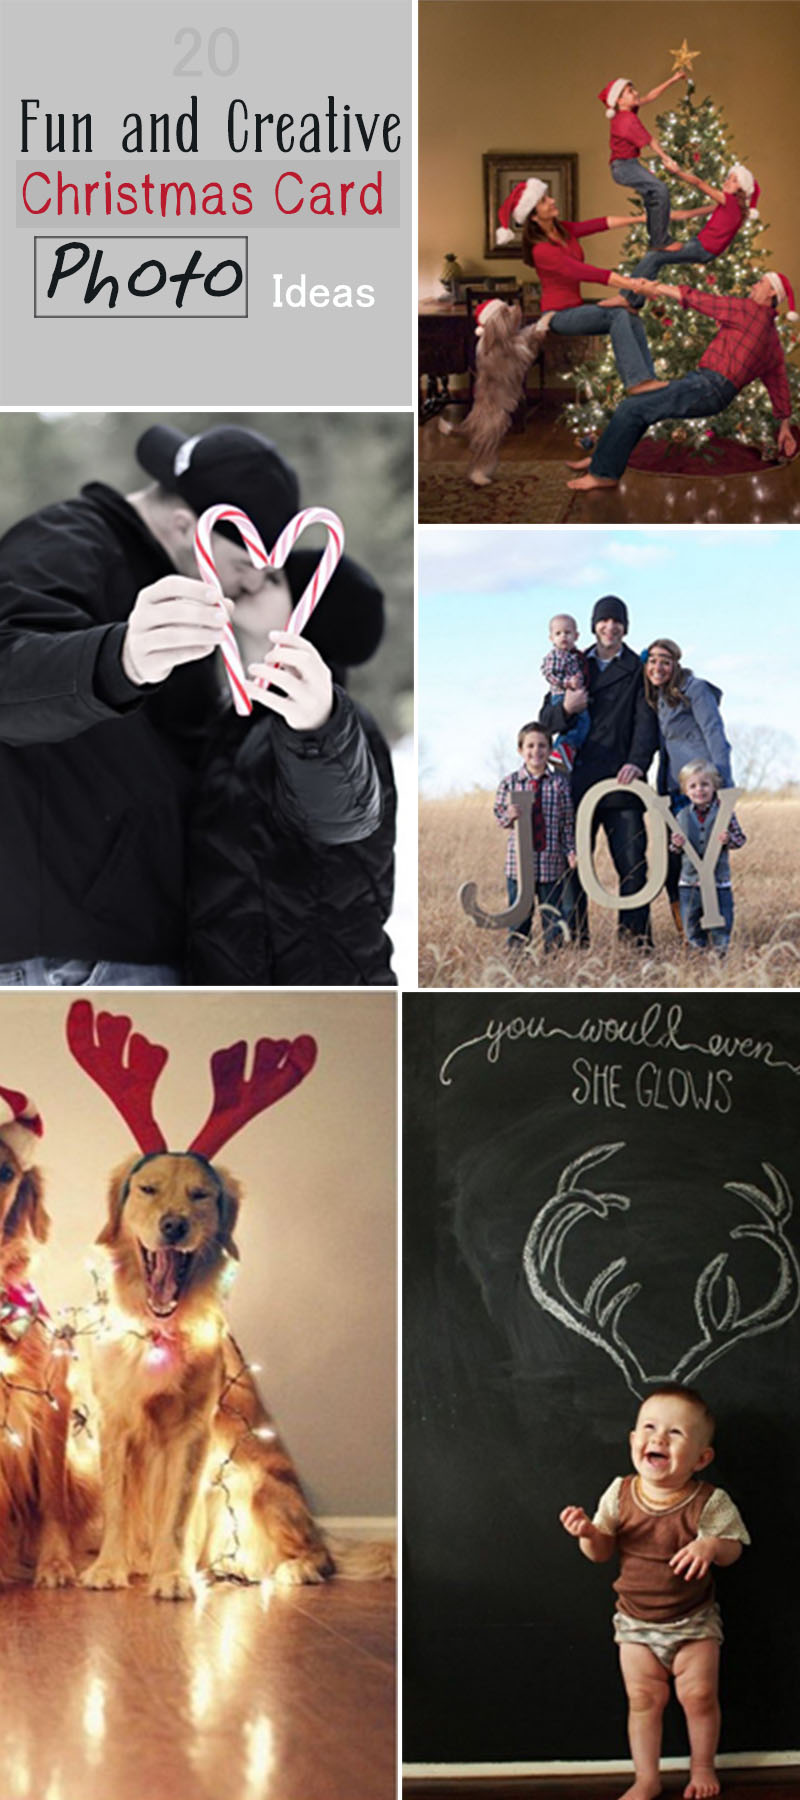 Fun and Creative Christmas Card Photo Ideas!